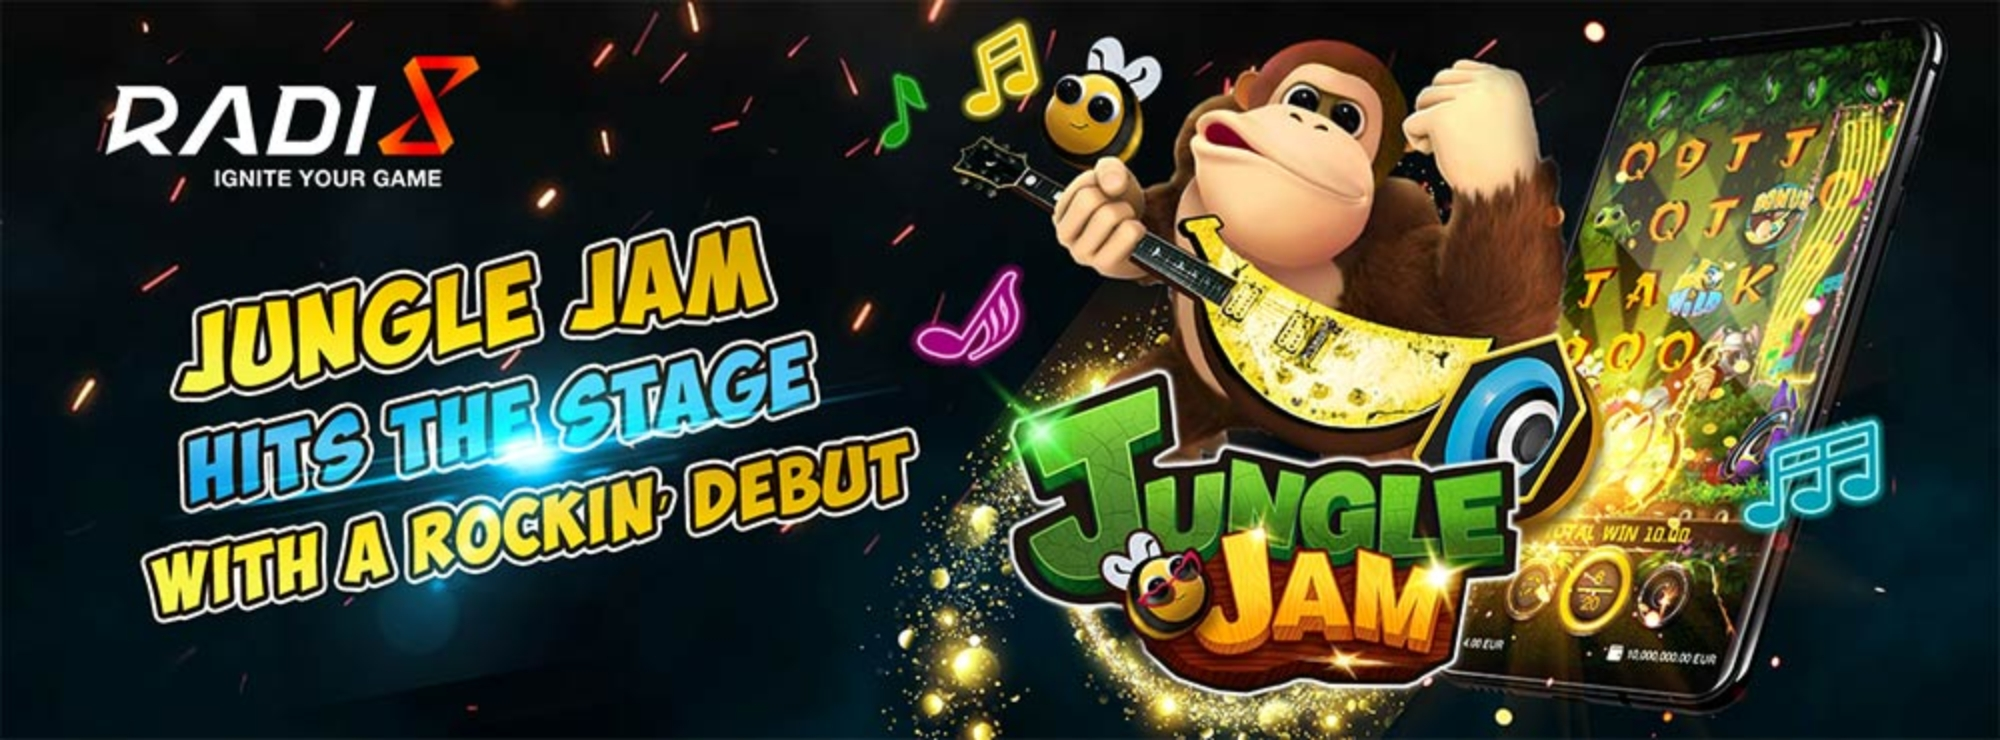 Jungle Jam Online Slot Demo Game by Radi8 Games